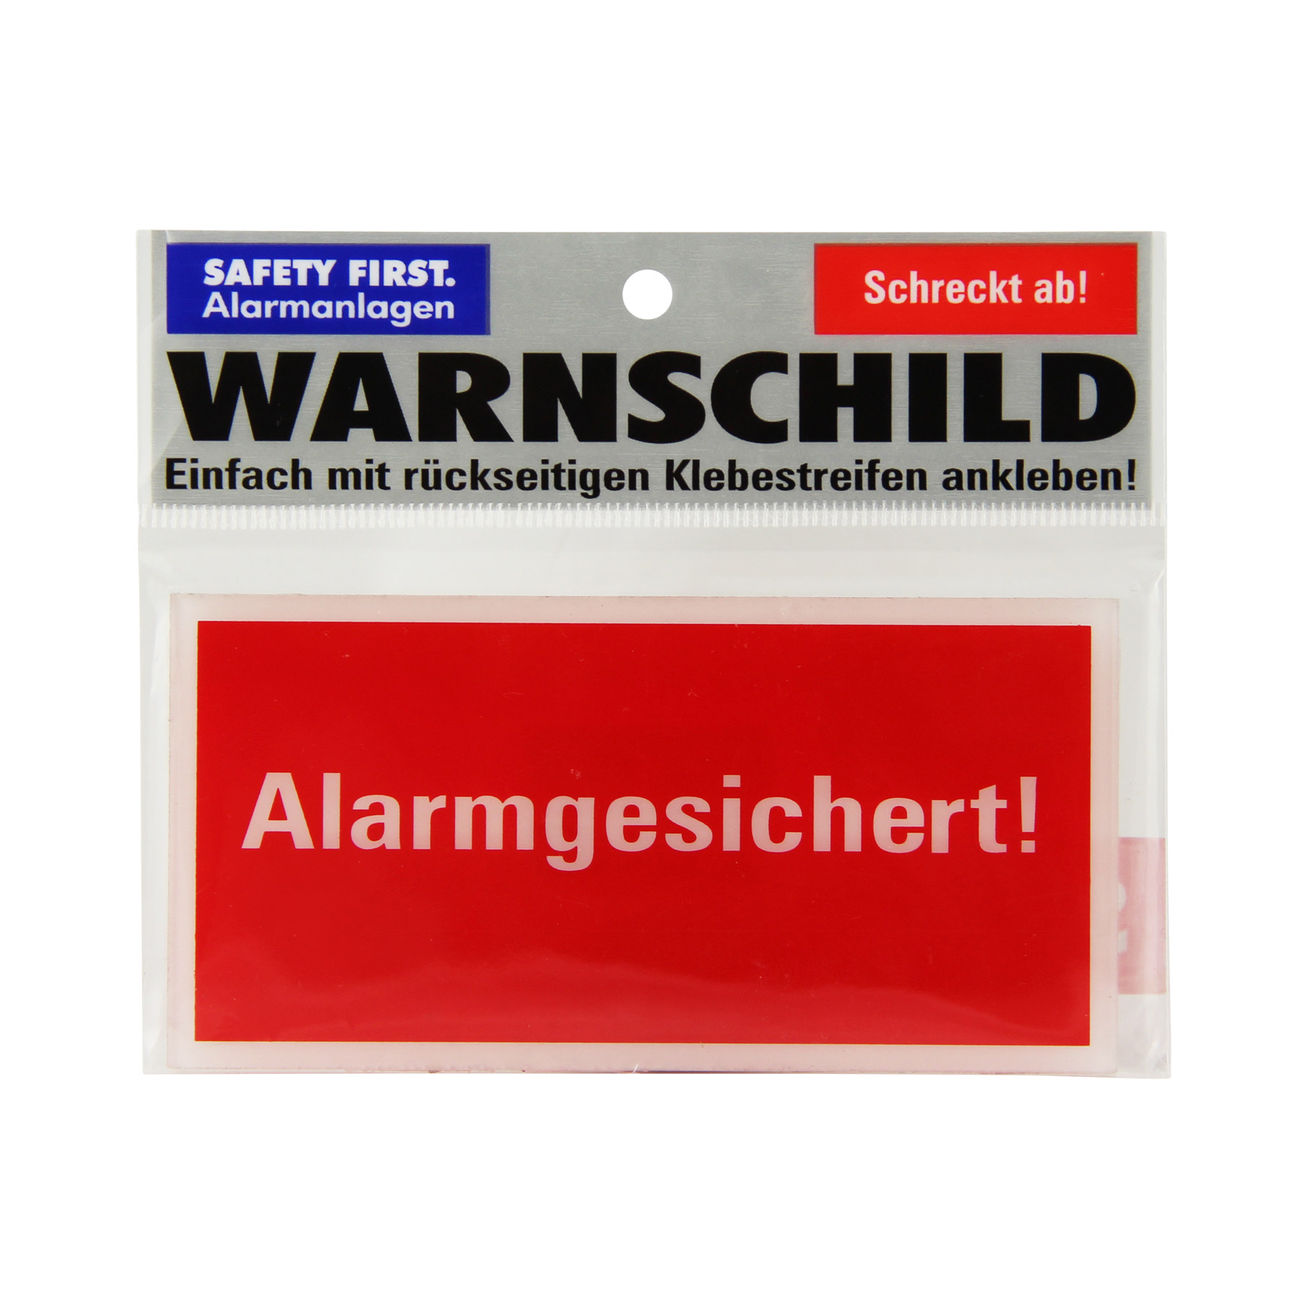 Safety First Warnschild Alarmgesichert! 0